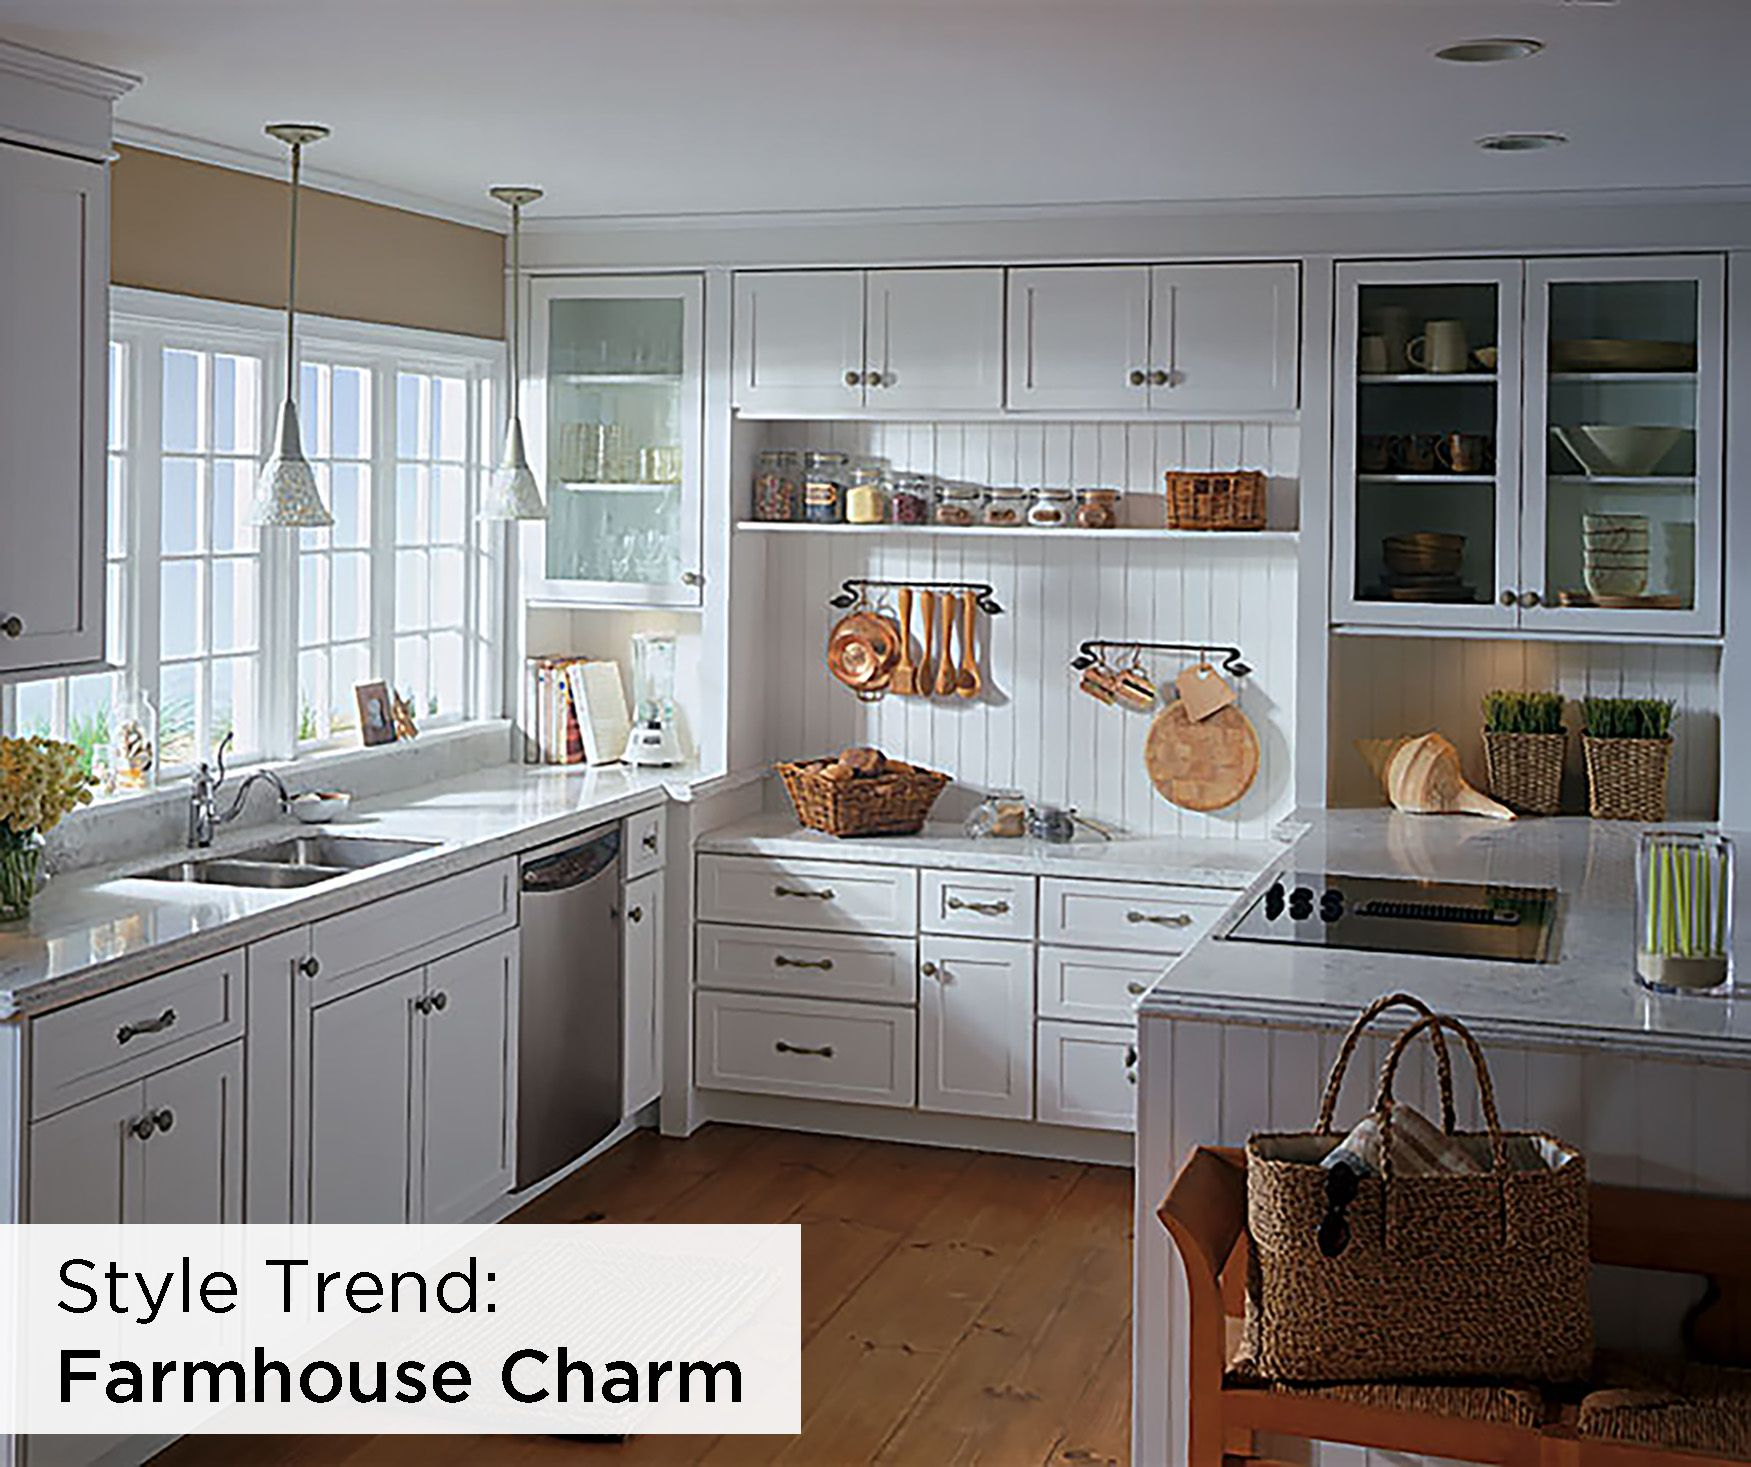 Farmhouse charm meets country living in this bright and